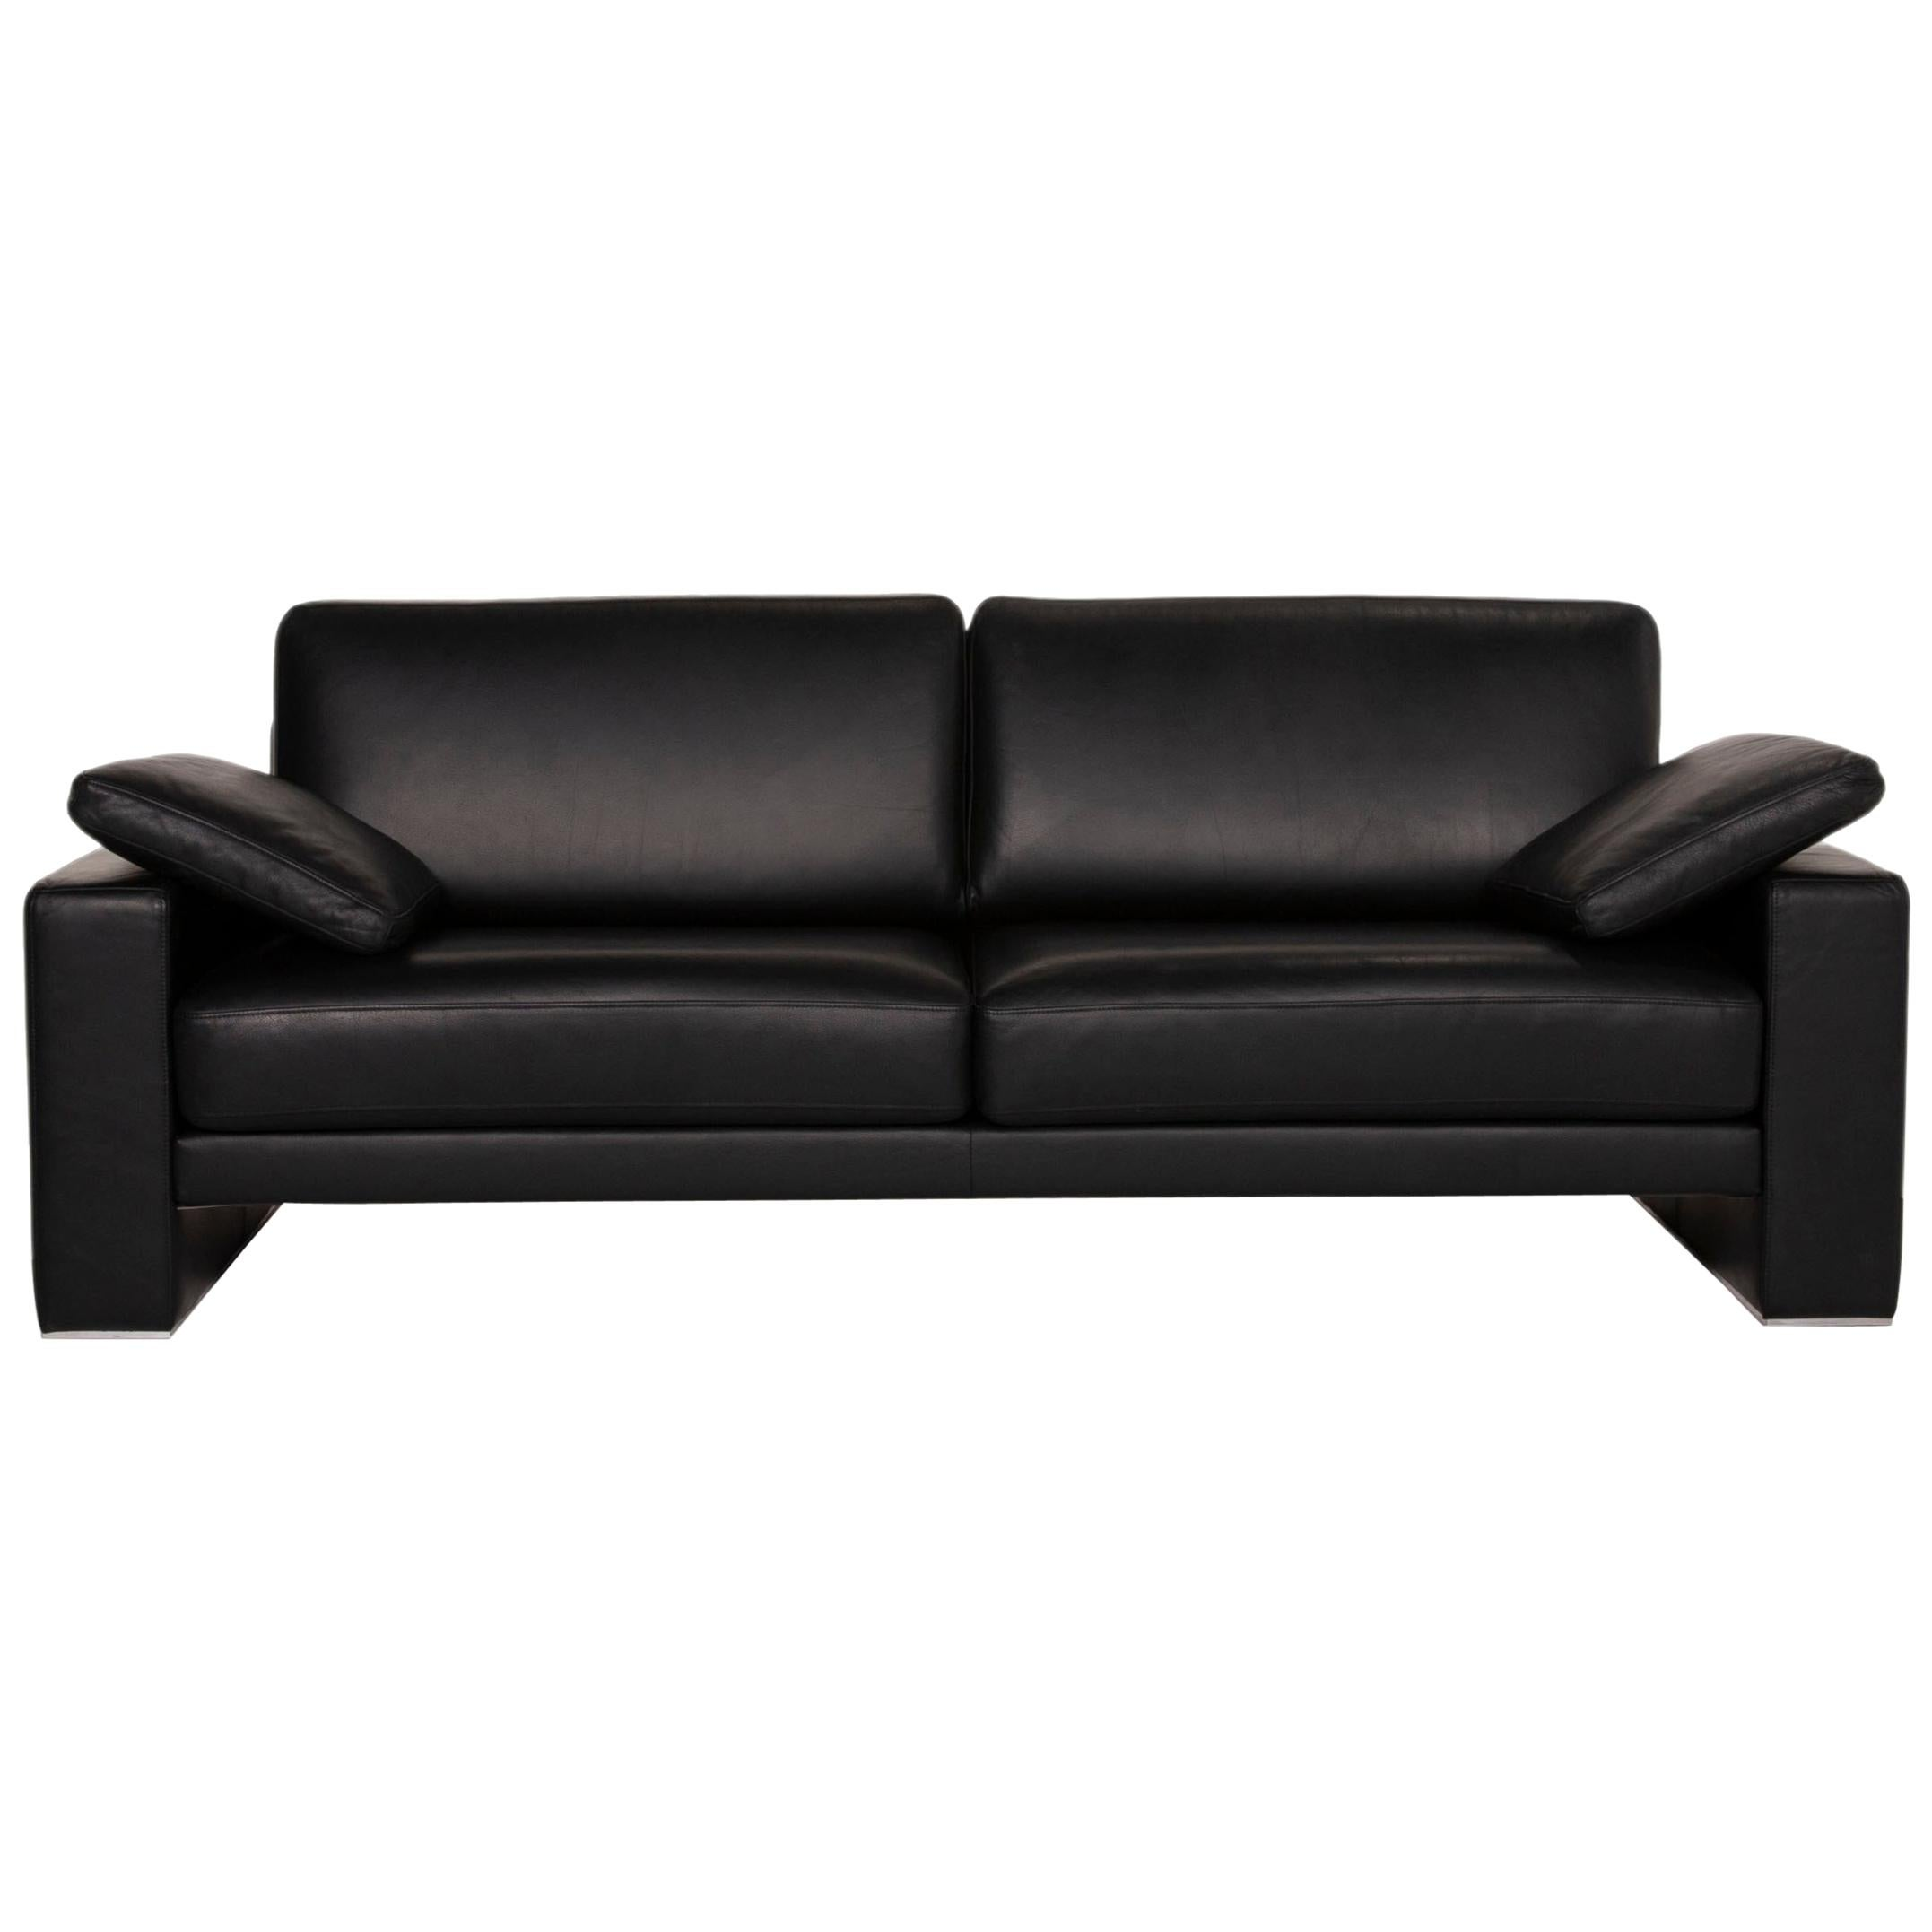 Rolf Benz Ego Leather Sofa Black Two-Seater